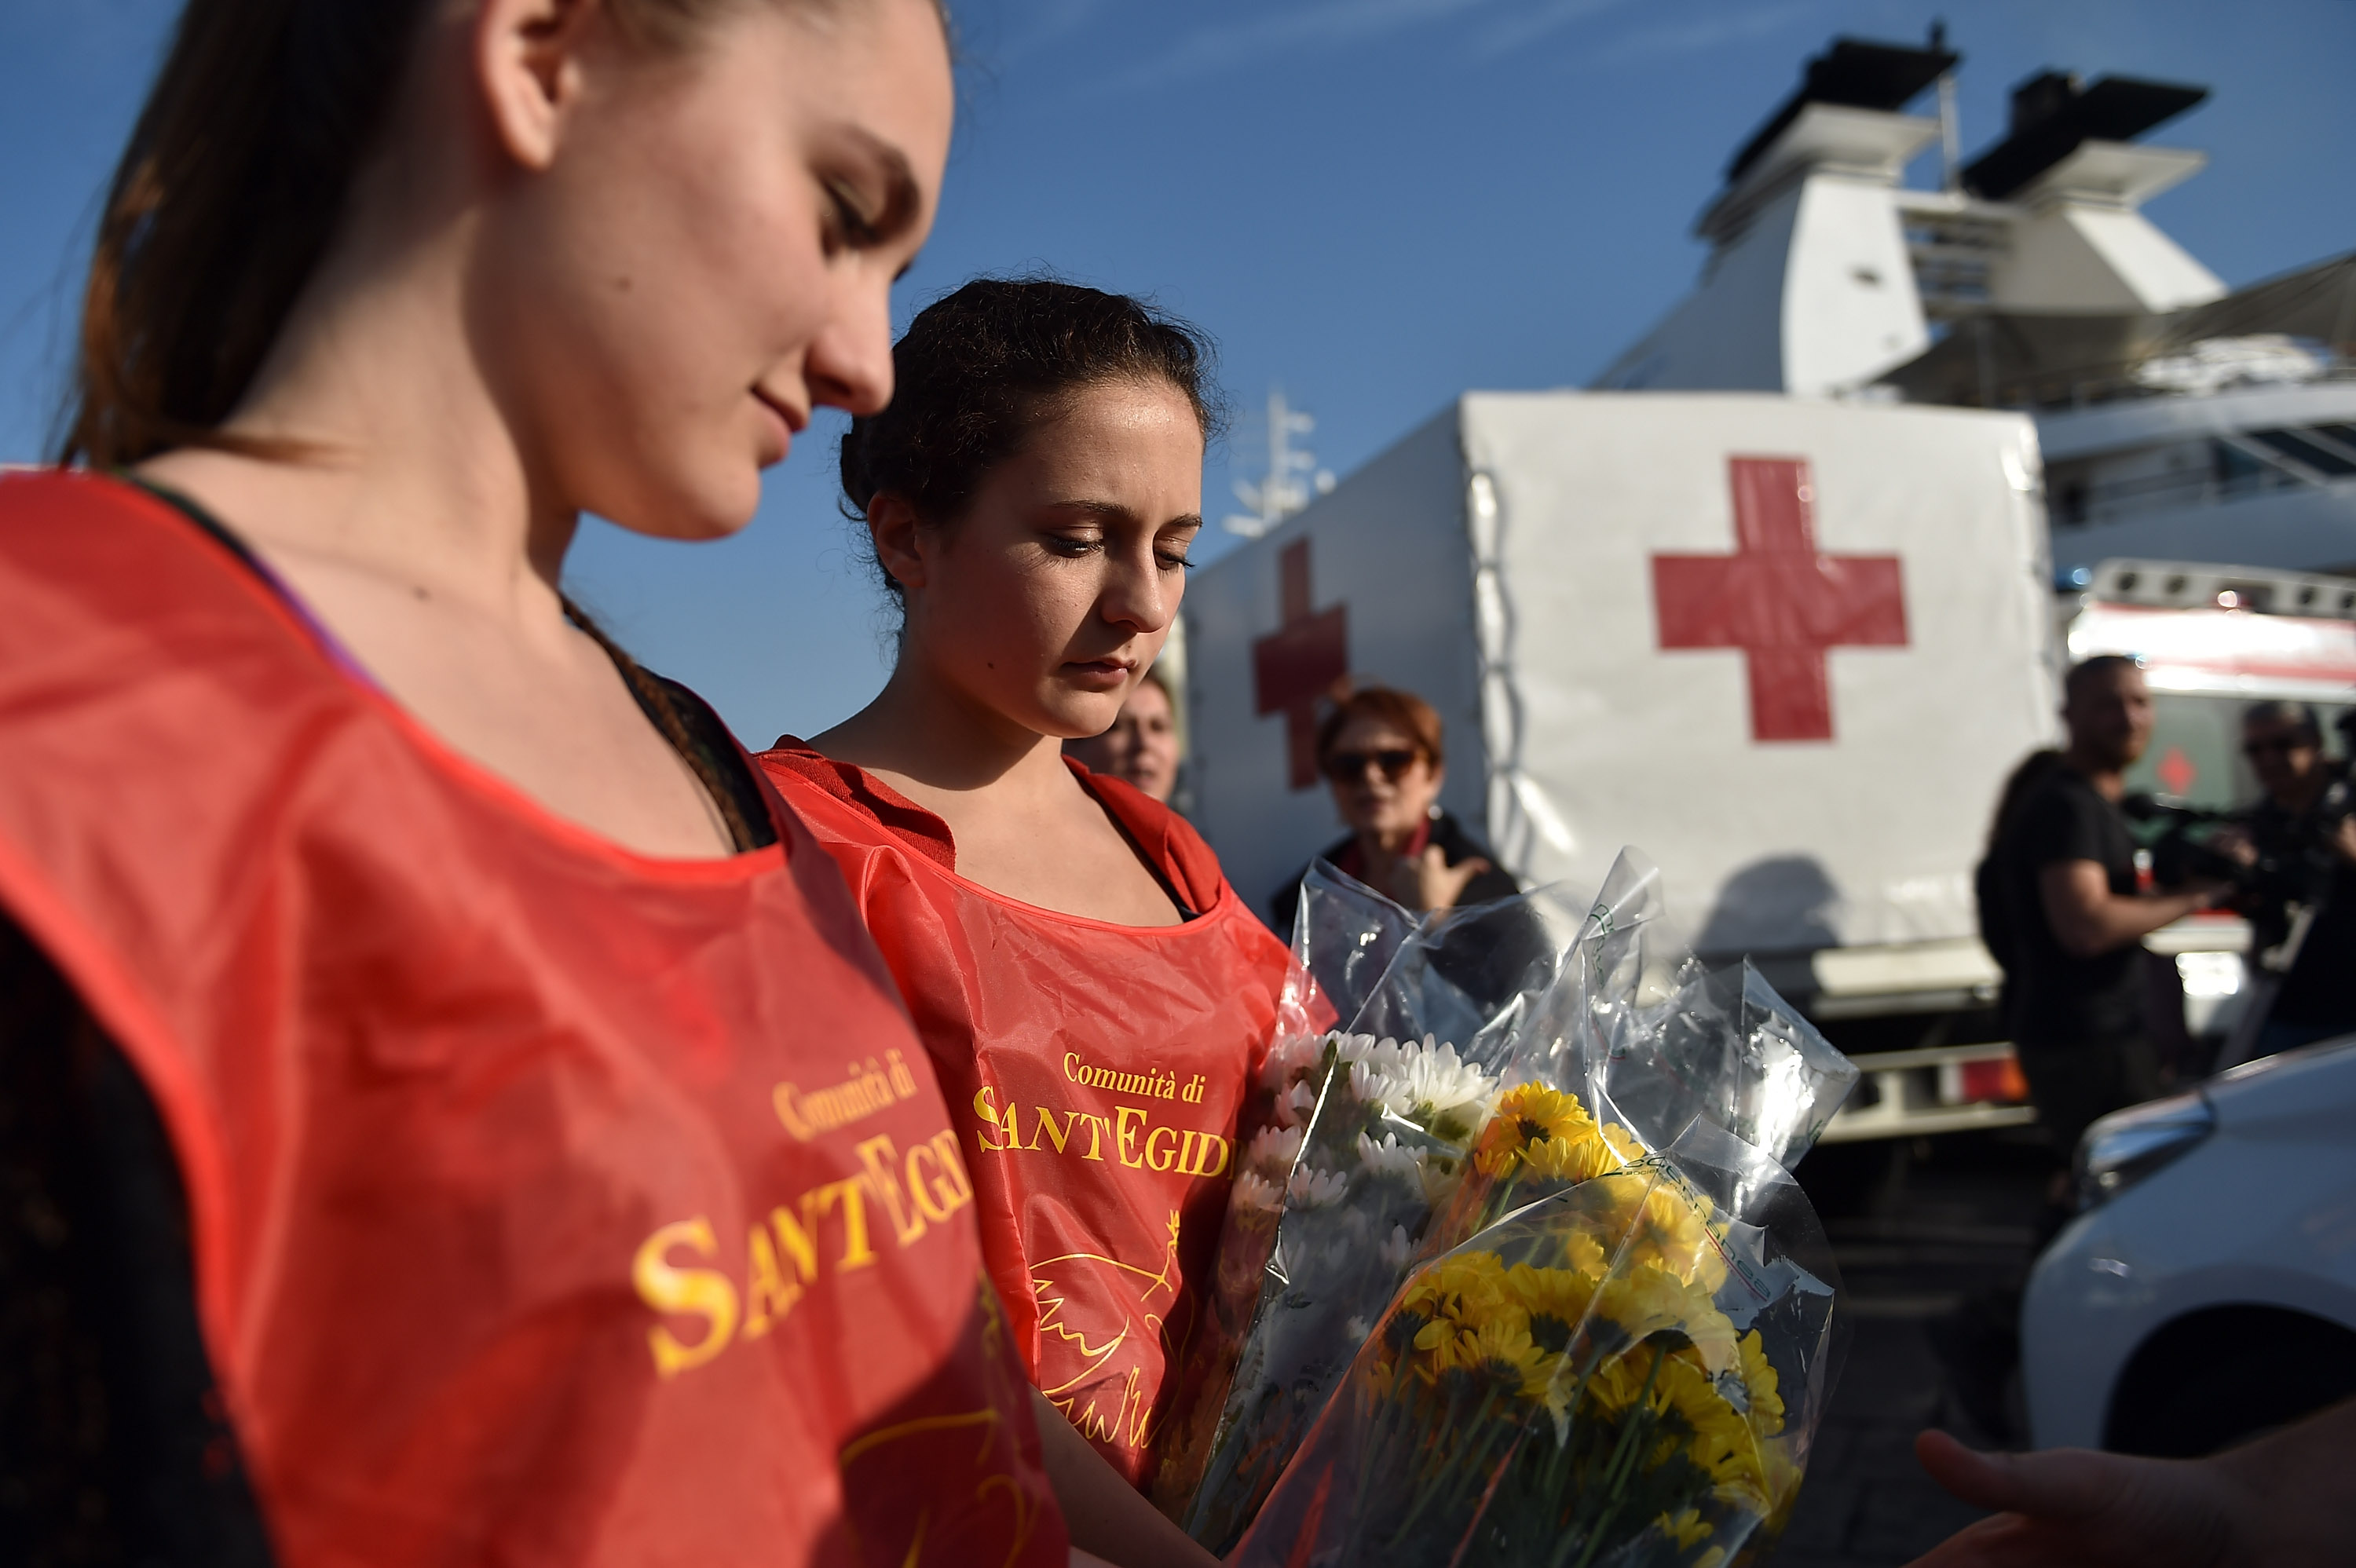 Sant'Egidio Community volunteers hold flowers while waiting arrival of Italian Navy Ship Grecale arriving at the Port of Catania, carrying 206 migrants and 17 bodies of the victims of a shipwrecked boat between Sicily and the north of Africa on May 13, 2014